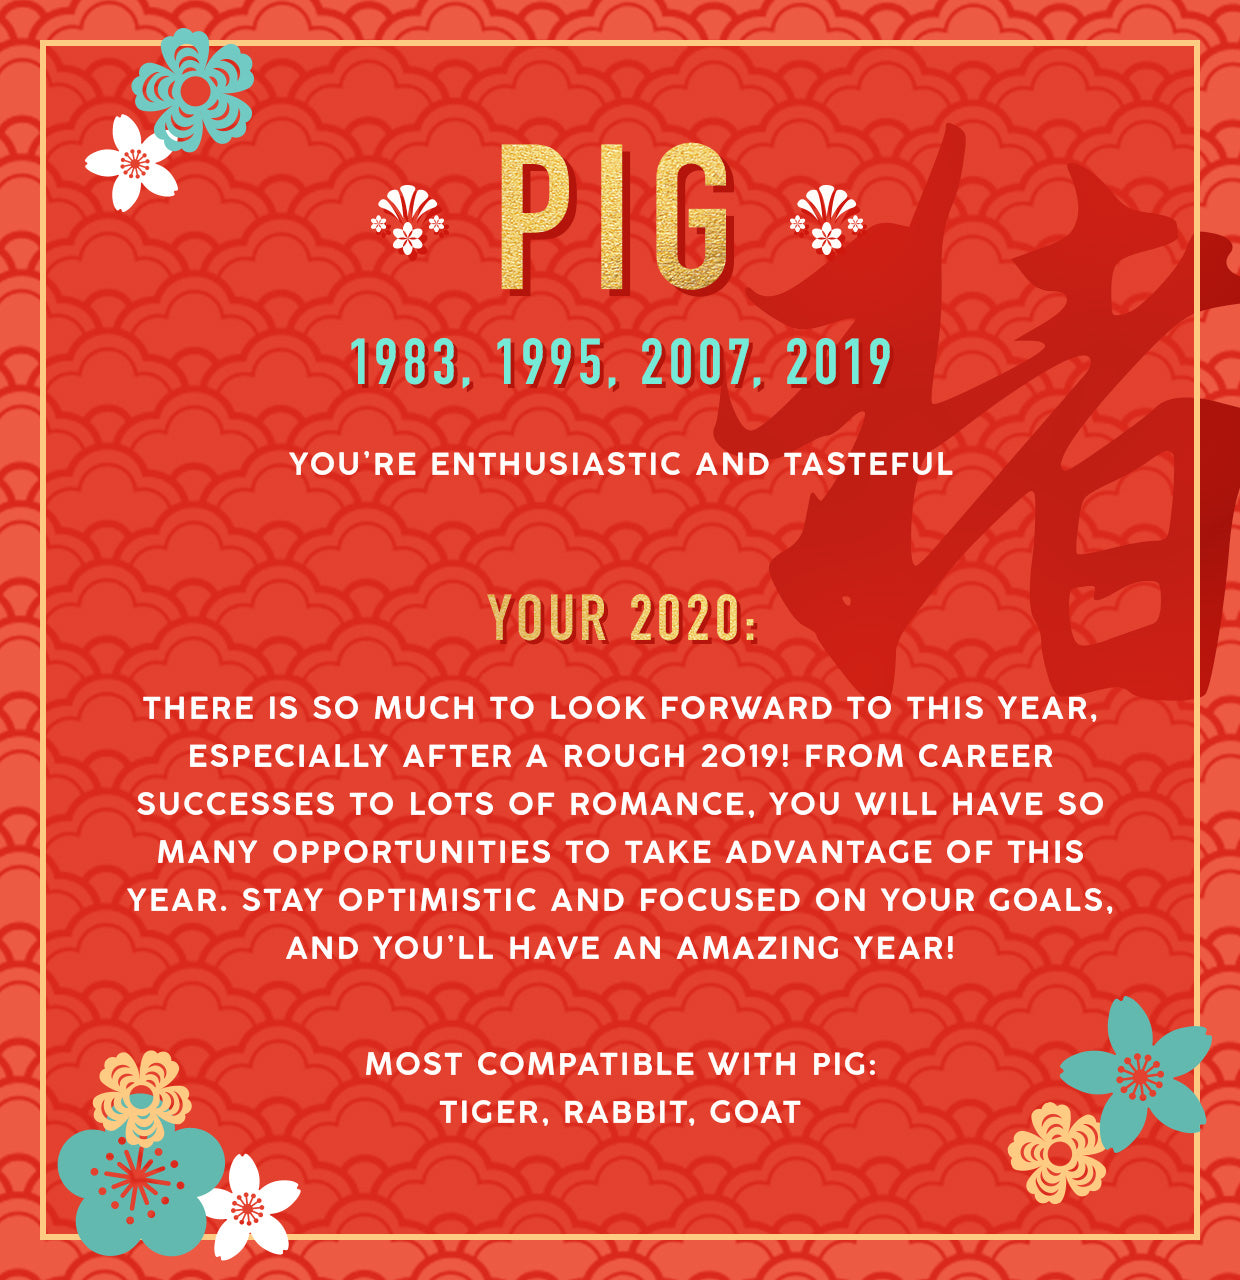 Pig Lunar New Year Collection Banner Image